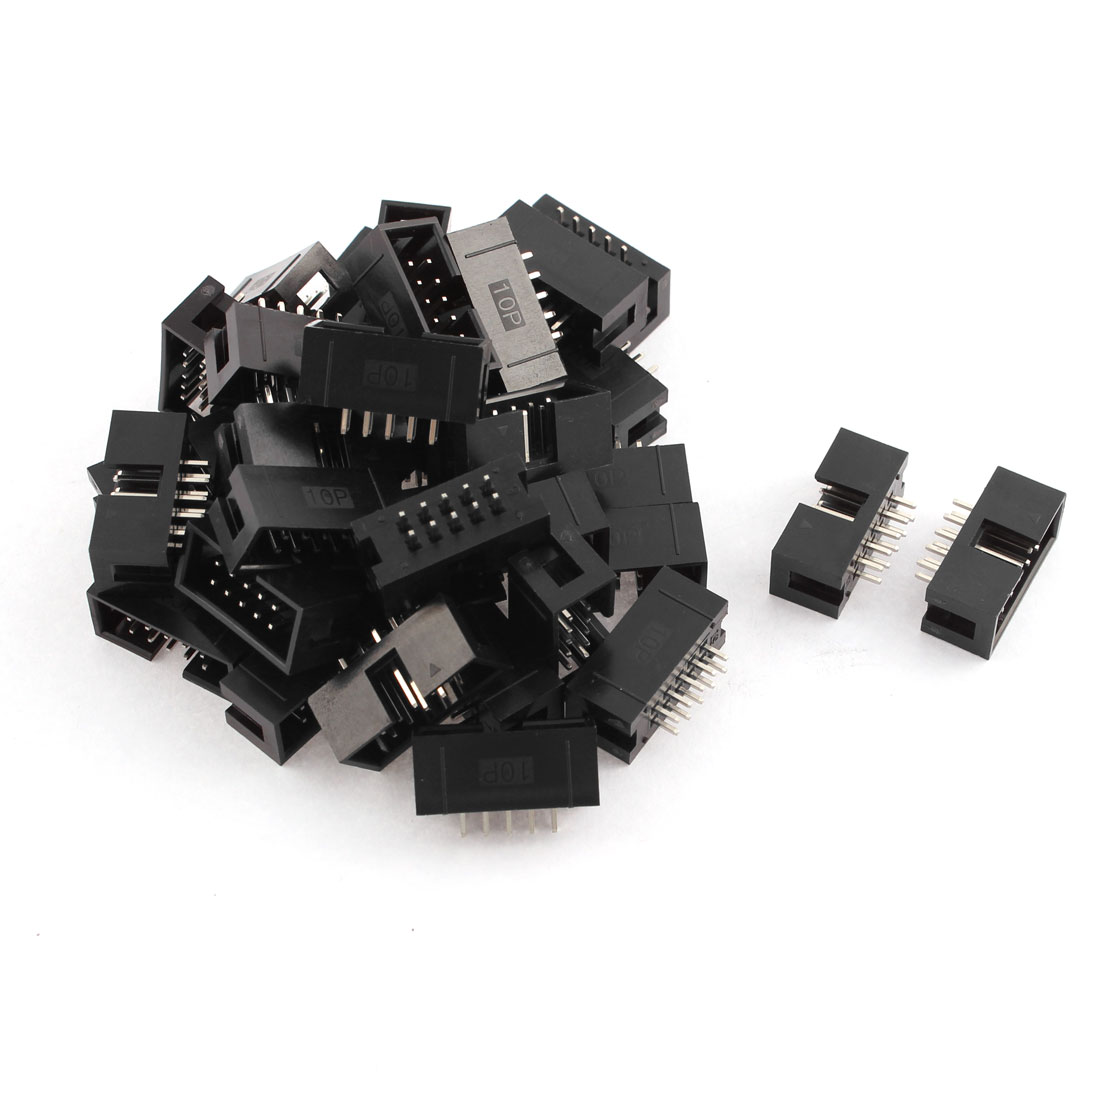 36pcs 2x5 10-Pin Straight Box Header Connector IDC Male Sockets 2.54mm